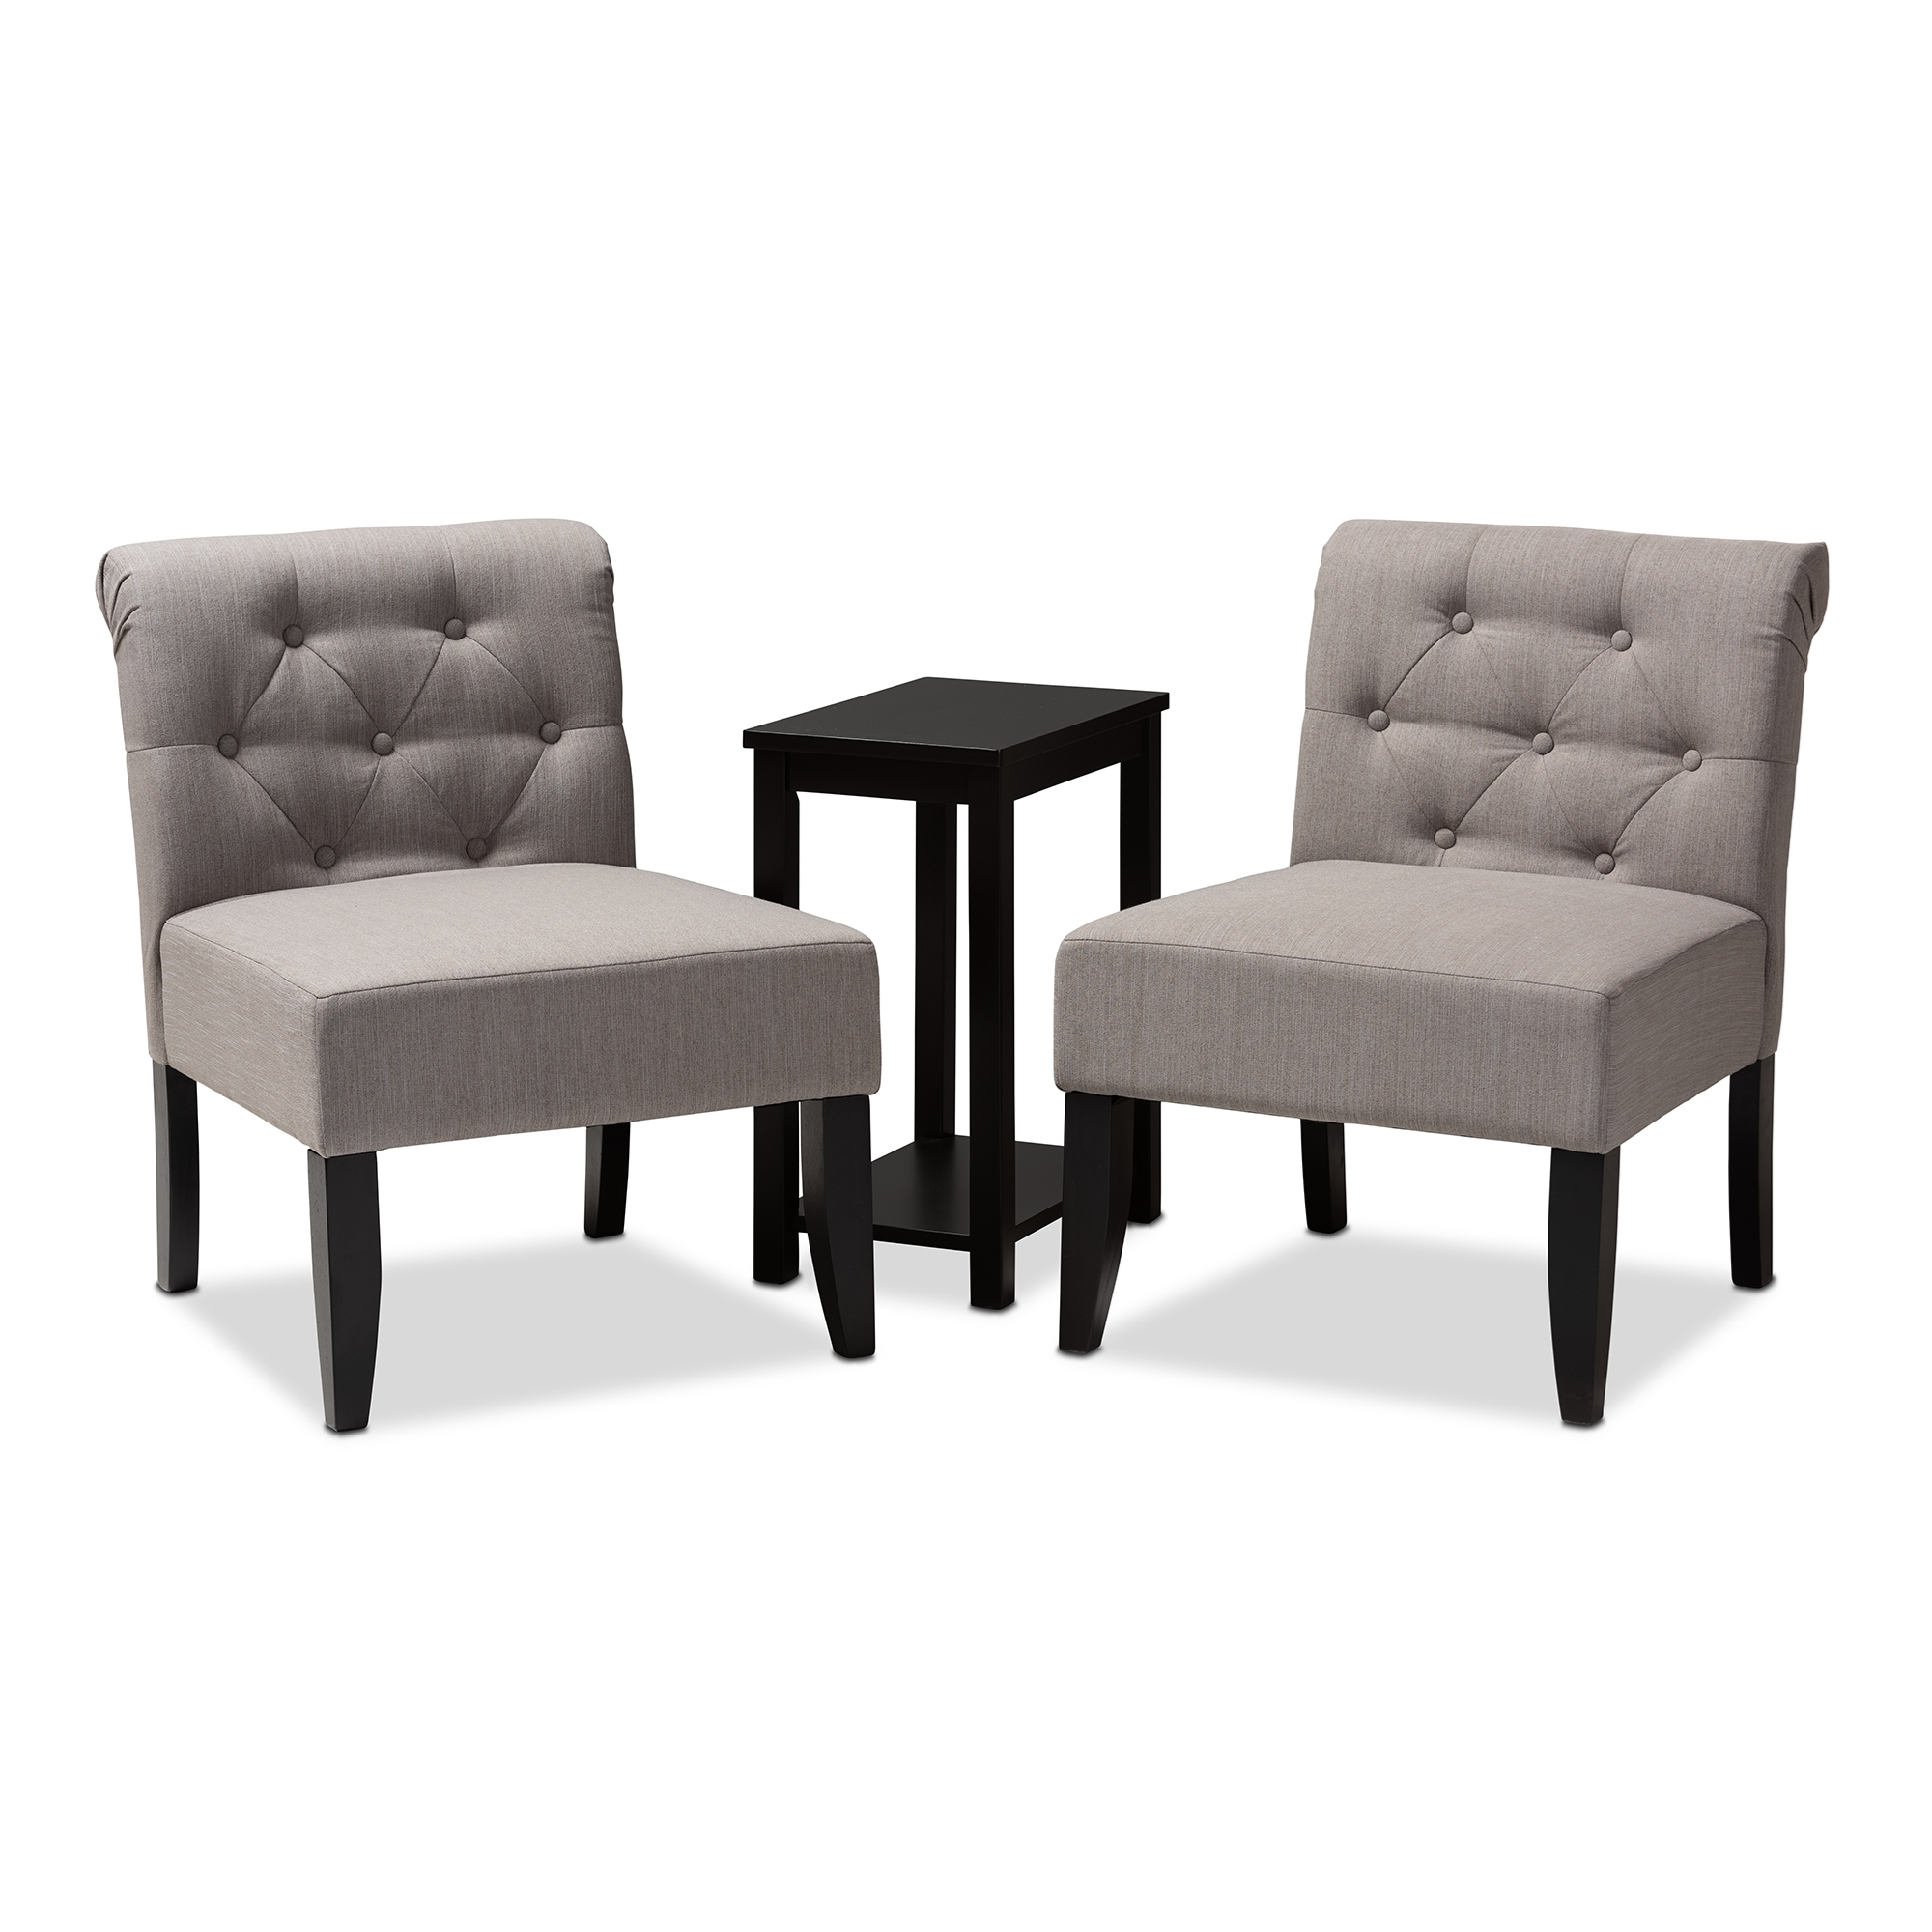 baxton studio veda transitional piece dark gray fabric upholstered accent chair and table set black finished wood glass couch concrete coffee end tables side red outdoor bridal